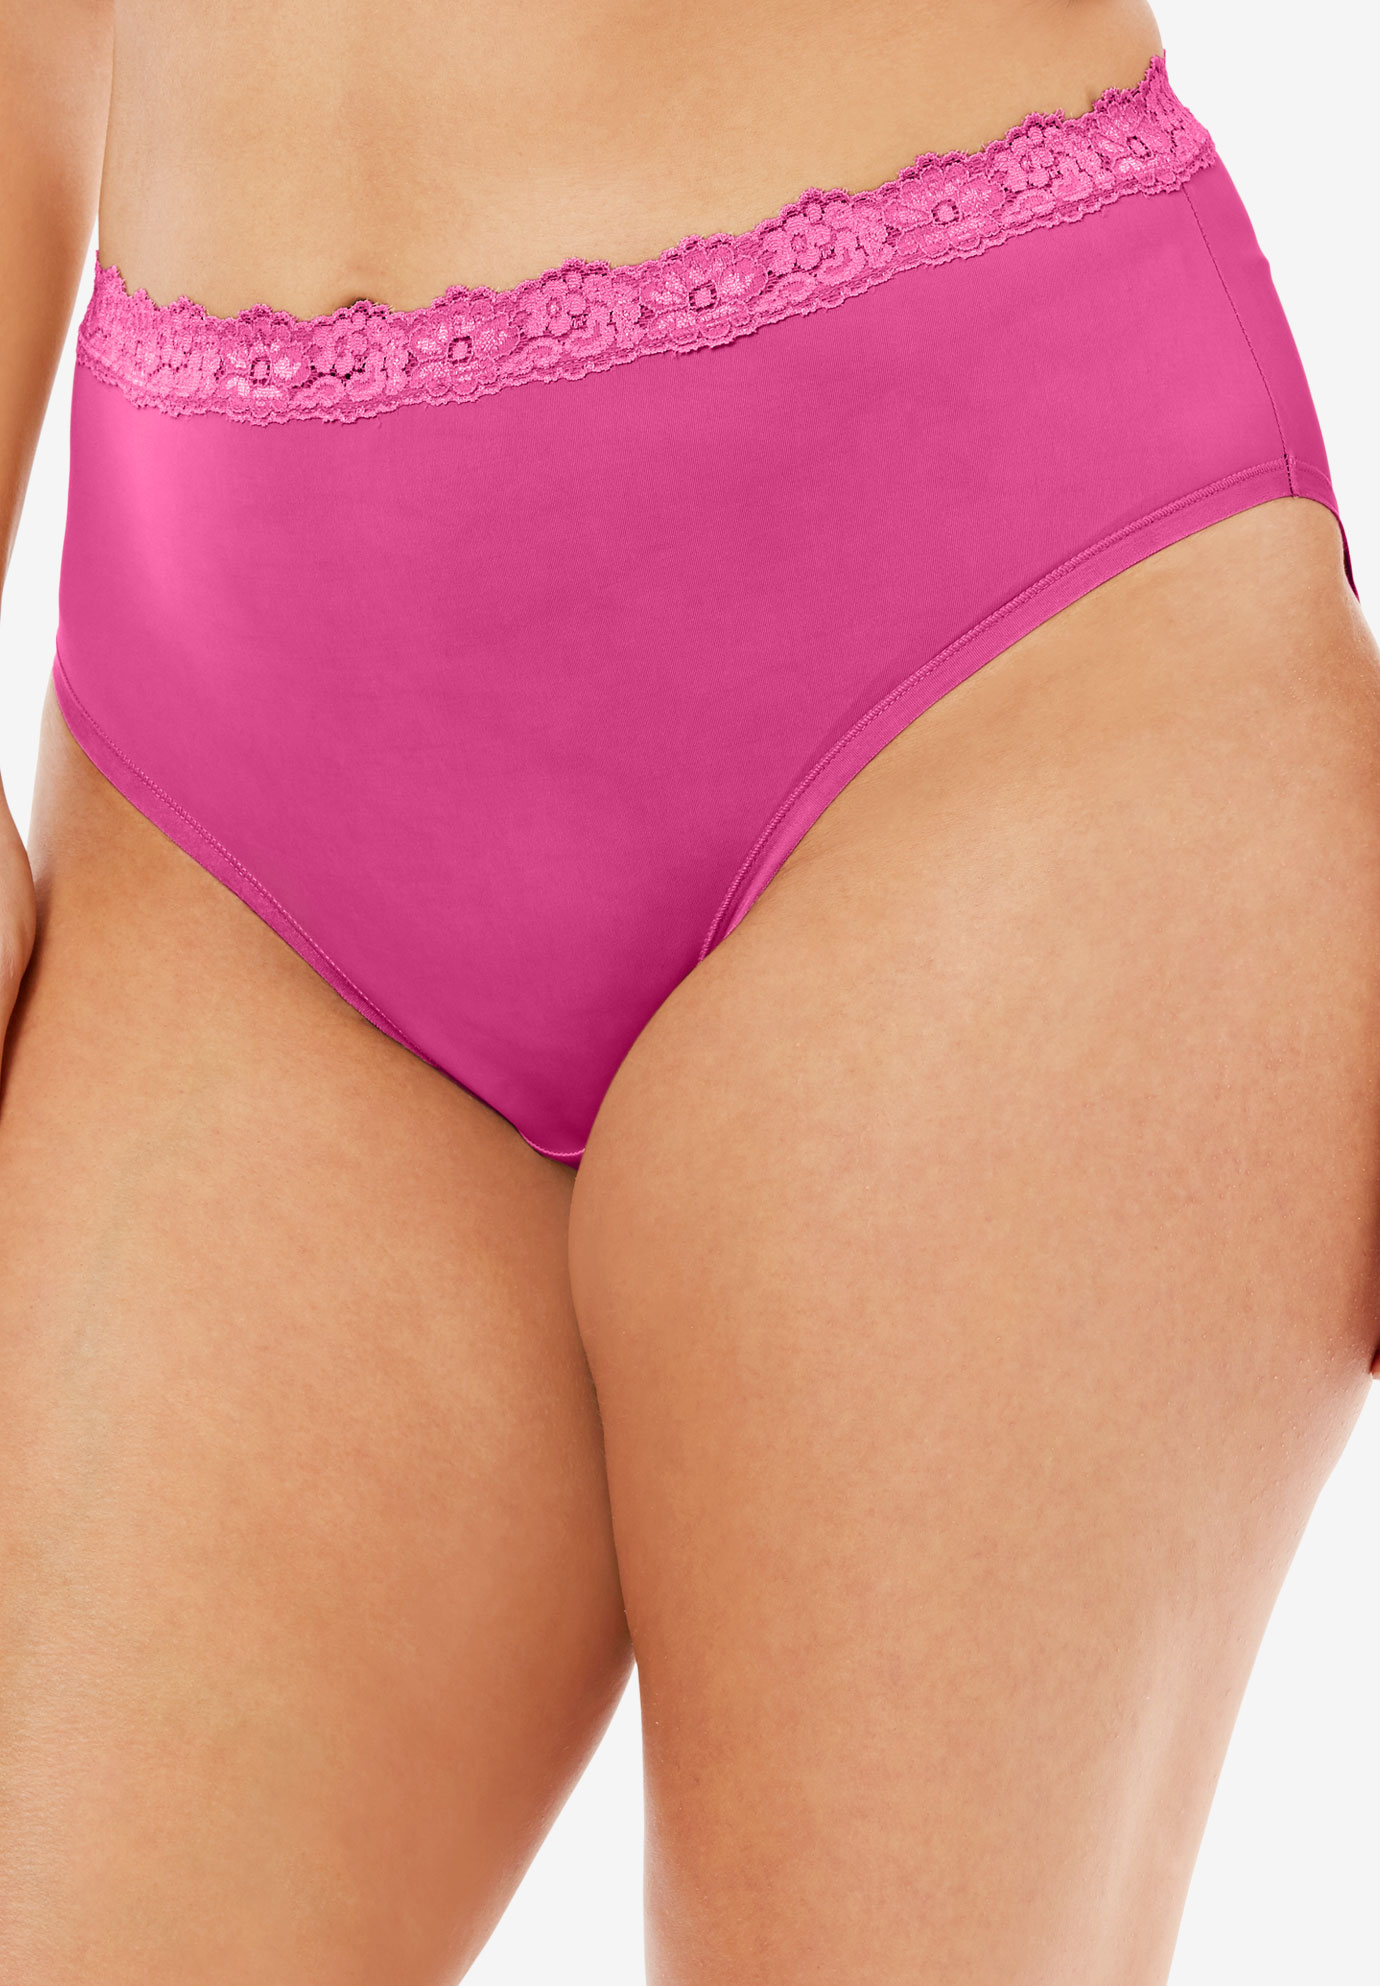 Lace-Trim High-Cut Microfiber Brief by Comfort Choice®, BRIGHT BERRY, hi-res